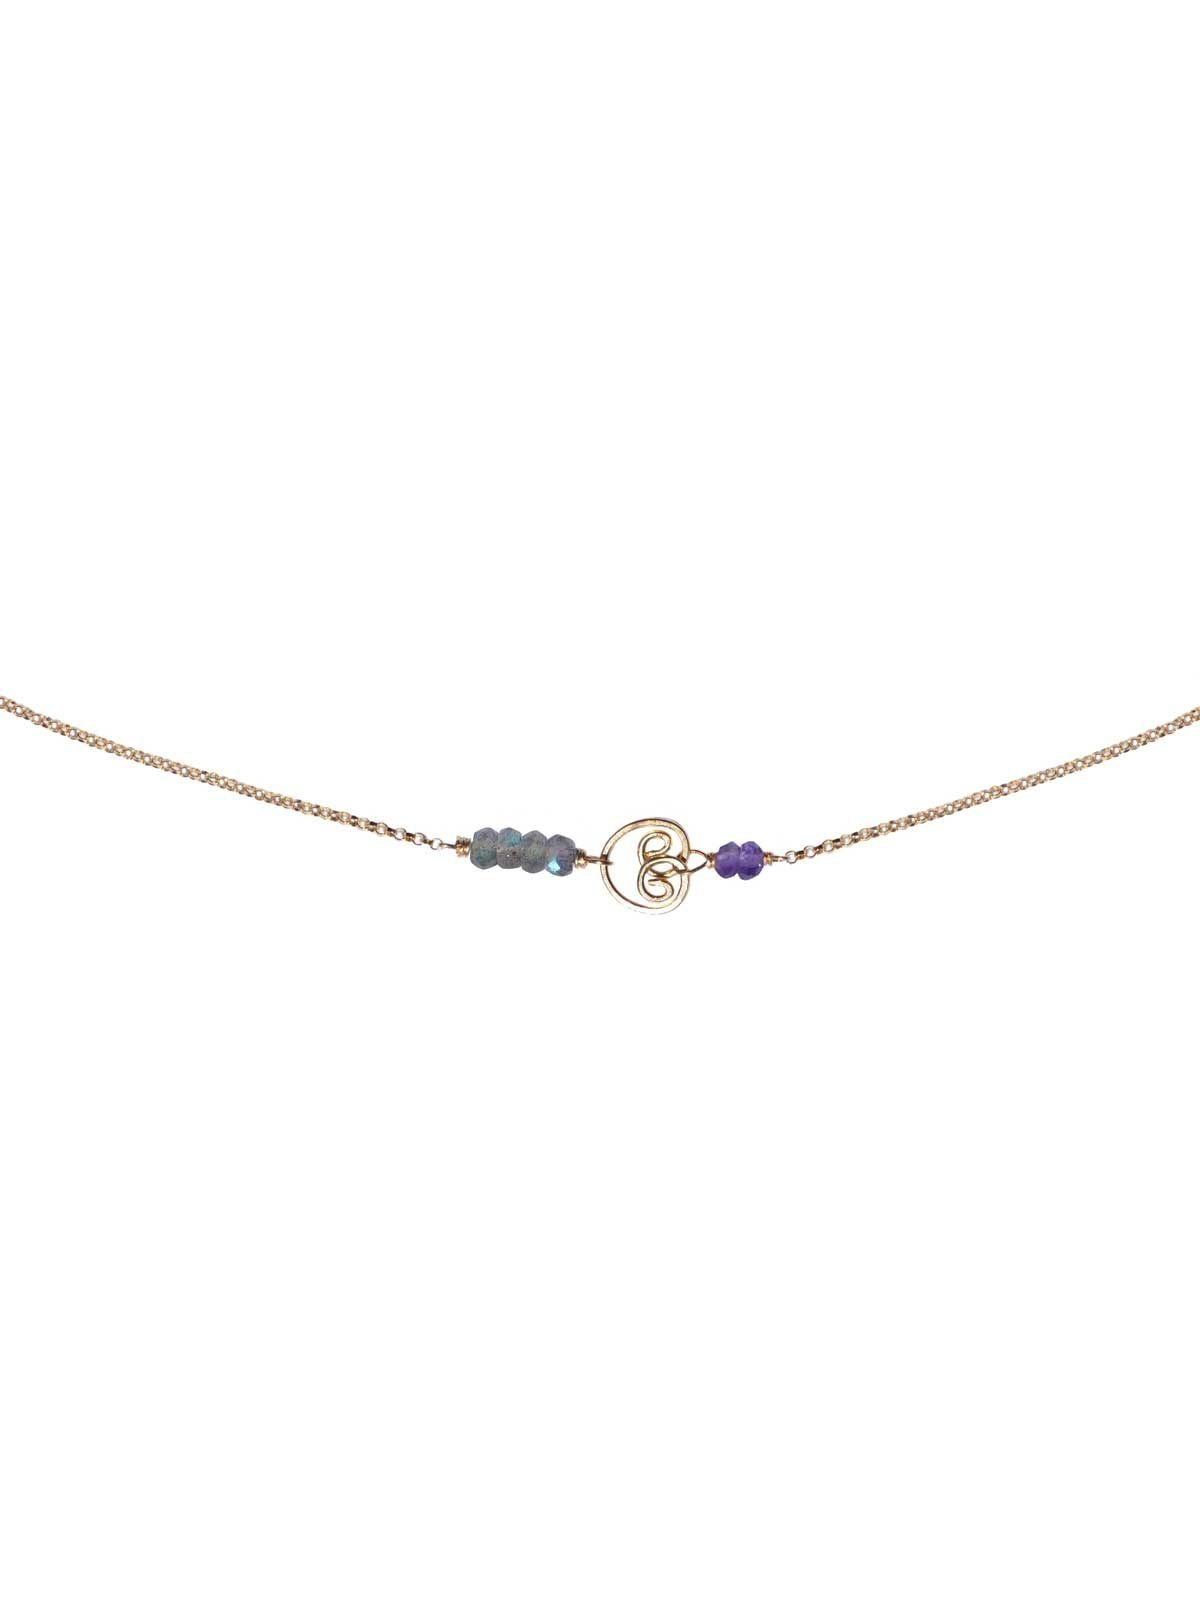 Buddha Necklace gold Labradorite Amethyst